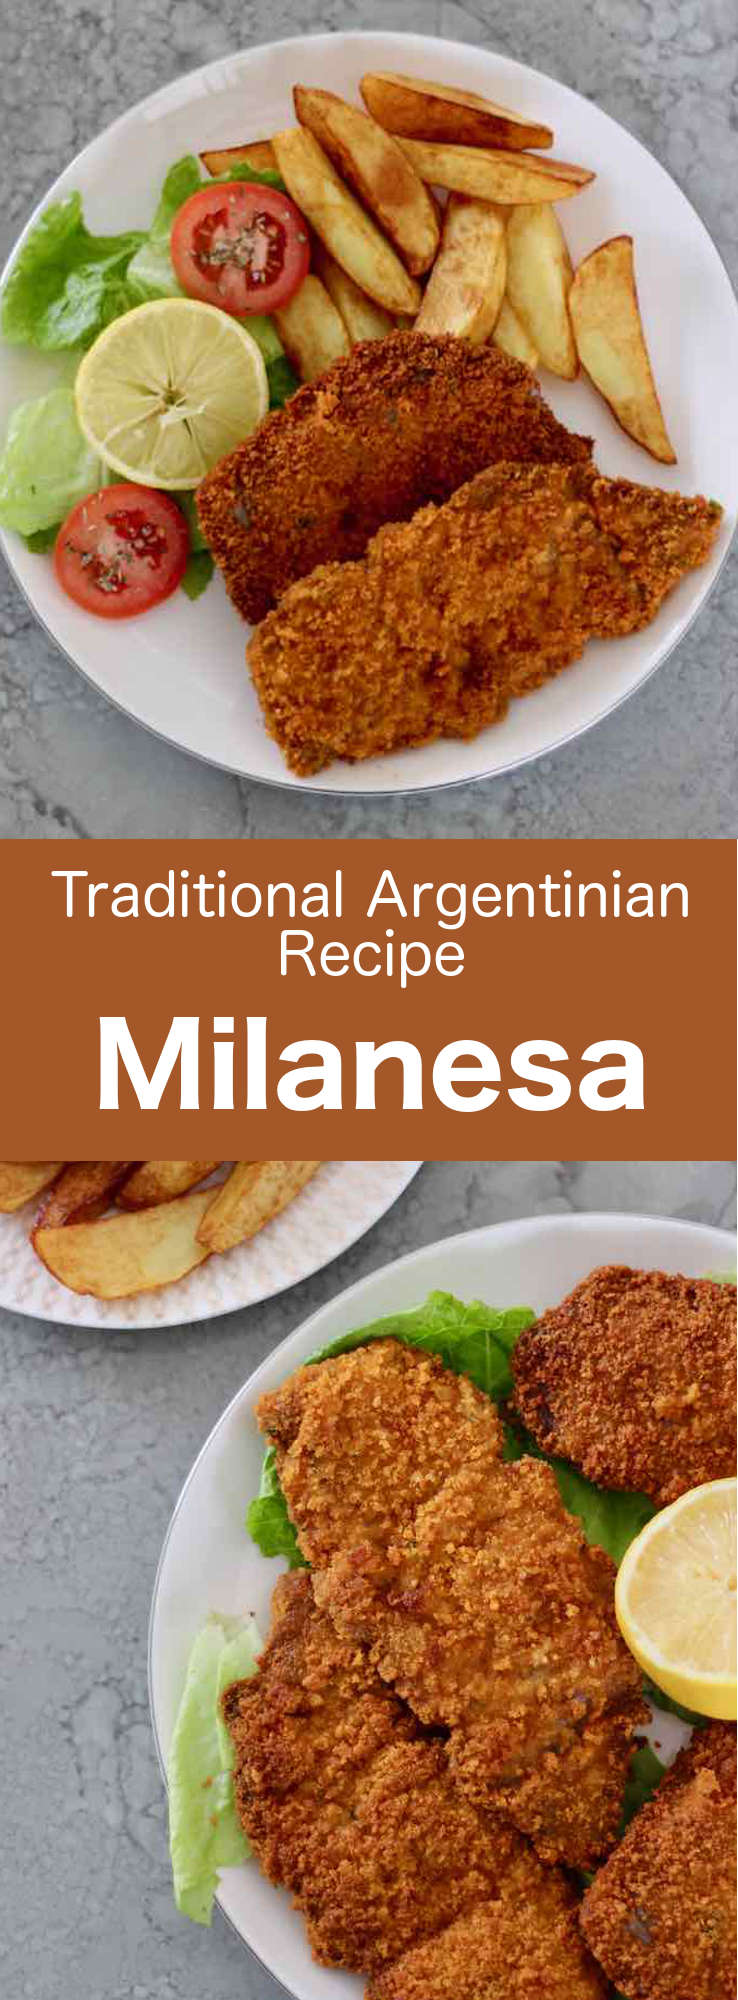 Argentinian milanesa is a slice of fried breaded beef, a classic of South American cuisine, and a variation of the famous Italian dish veal Milanese. #Argentina #ArgentinianCuisine #ArgentinianRecipe #ArgentinianFood #WorldCuisine #196flavors